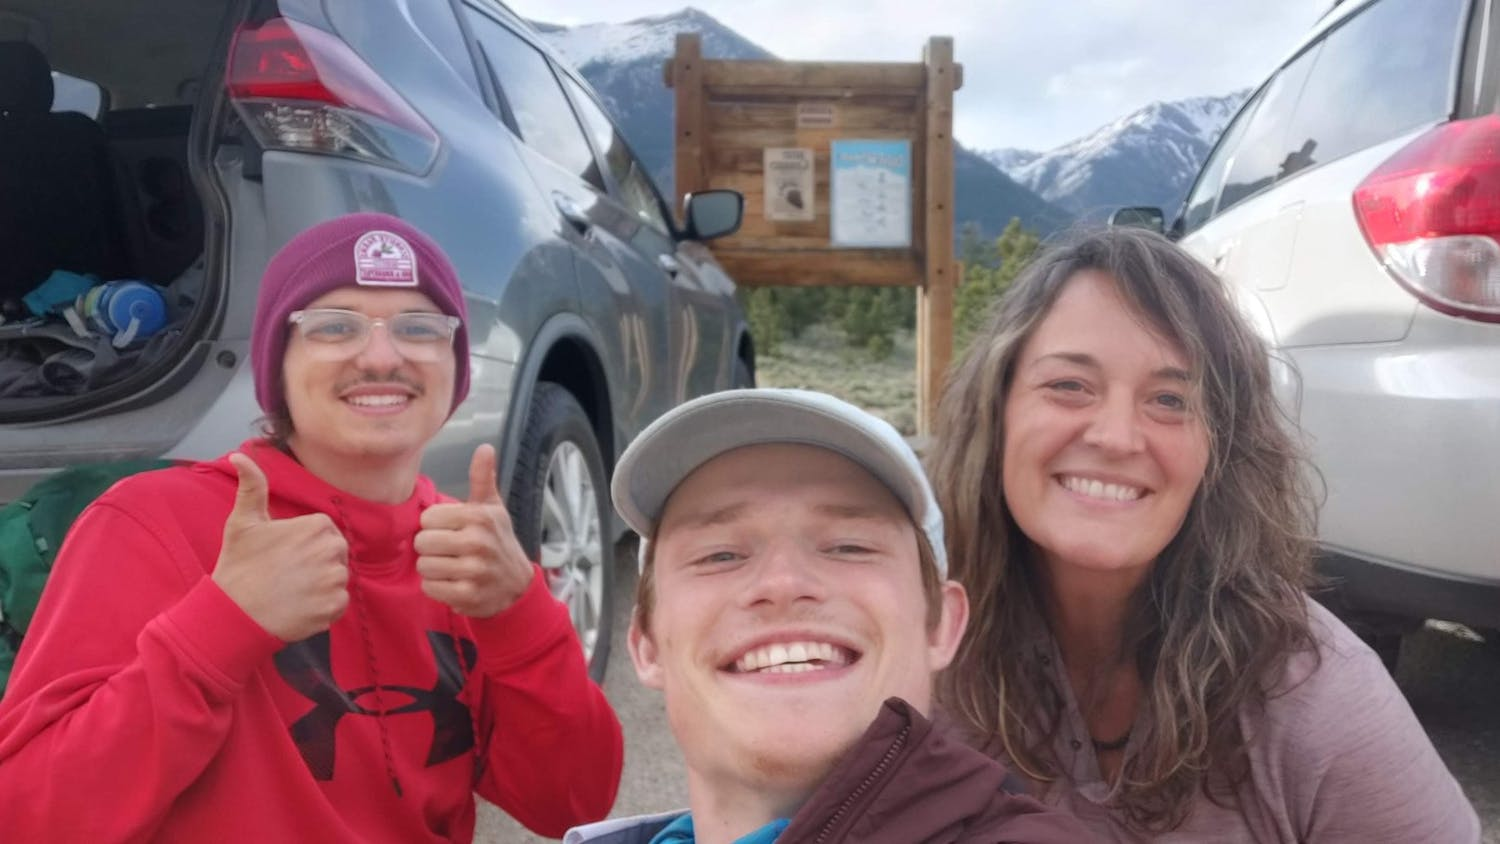 Collin Searles (left) and Nick Metz (center) pose with an unknown woman at a trail head.